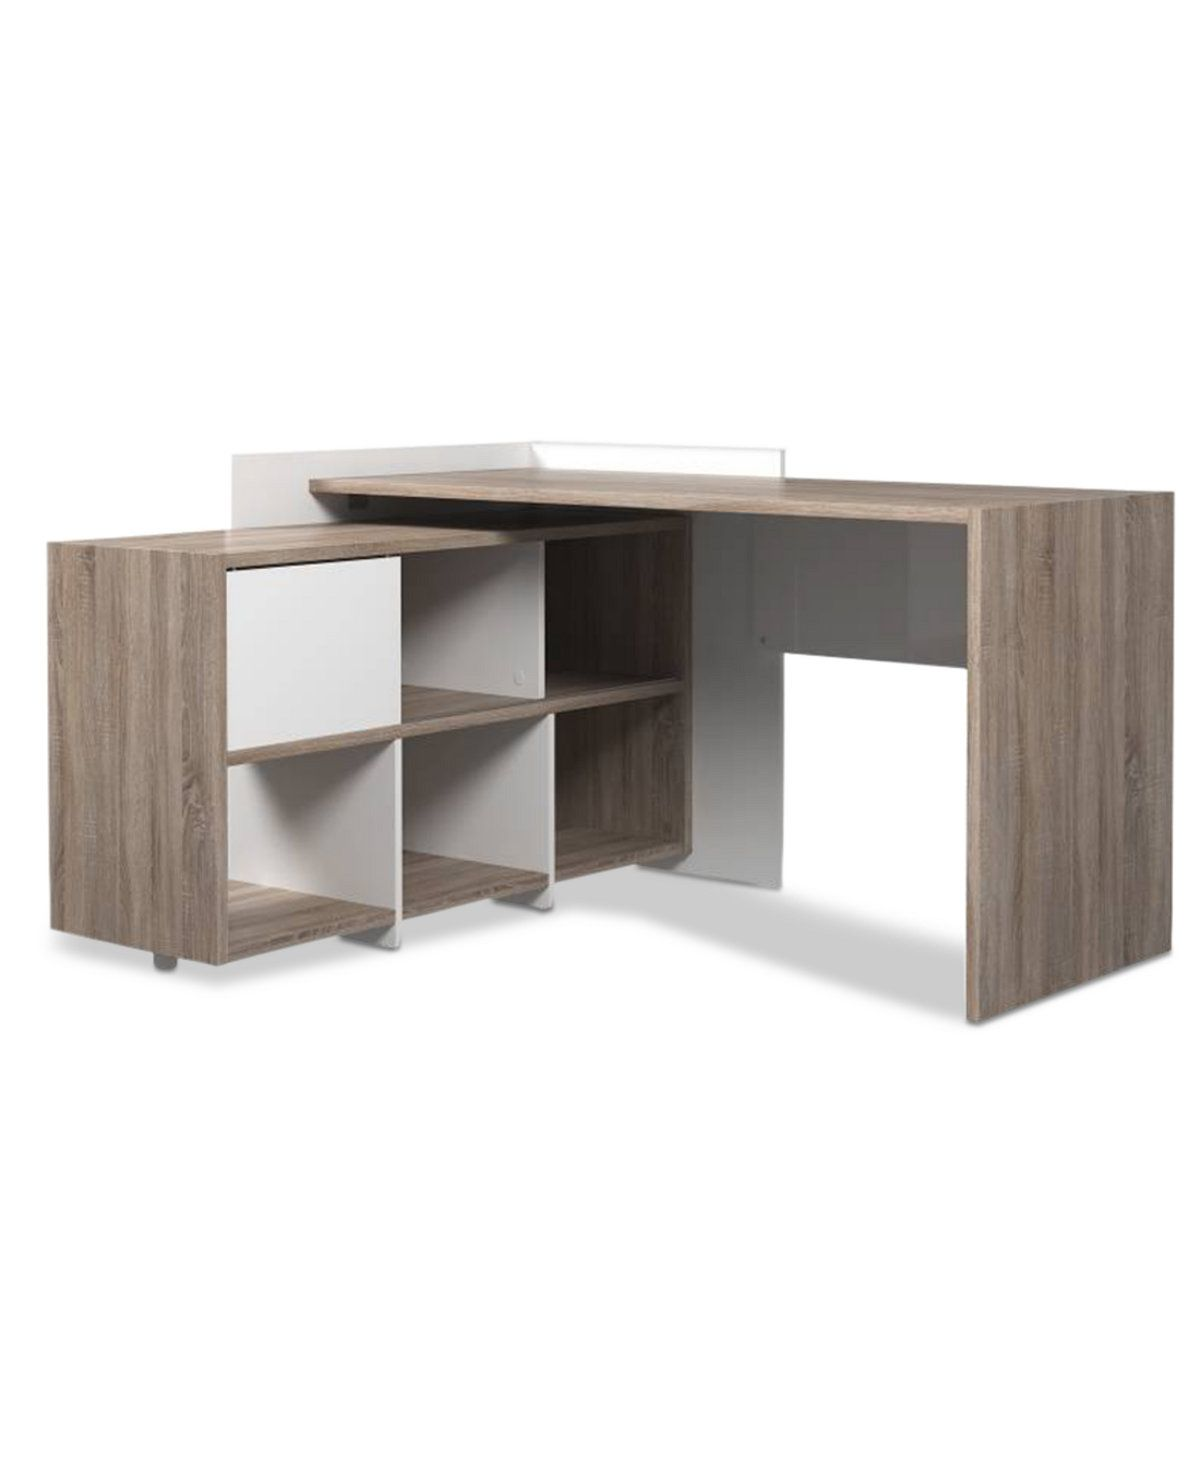 Macy S Desk: Furniture Poline Desk With 6 Shelf Bookcase & Reviews